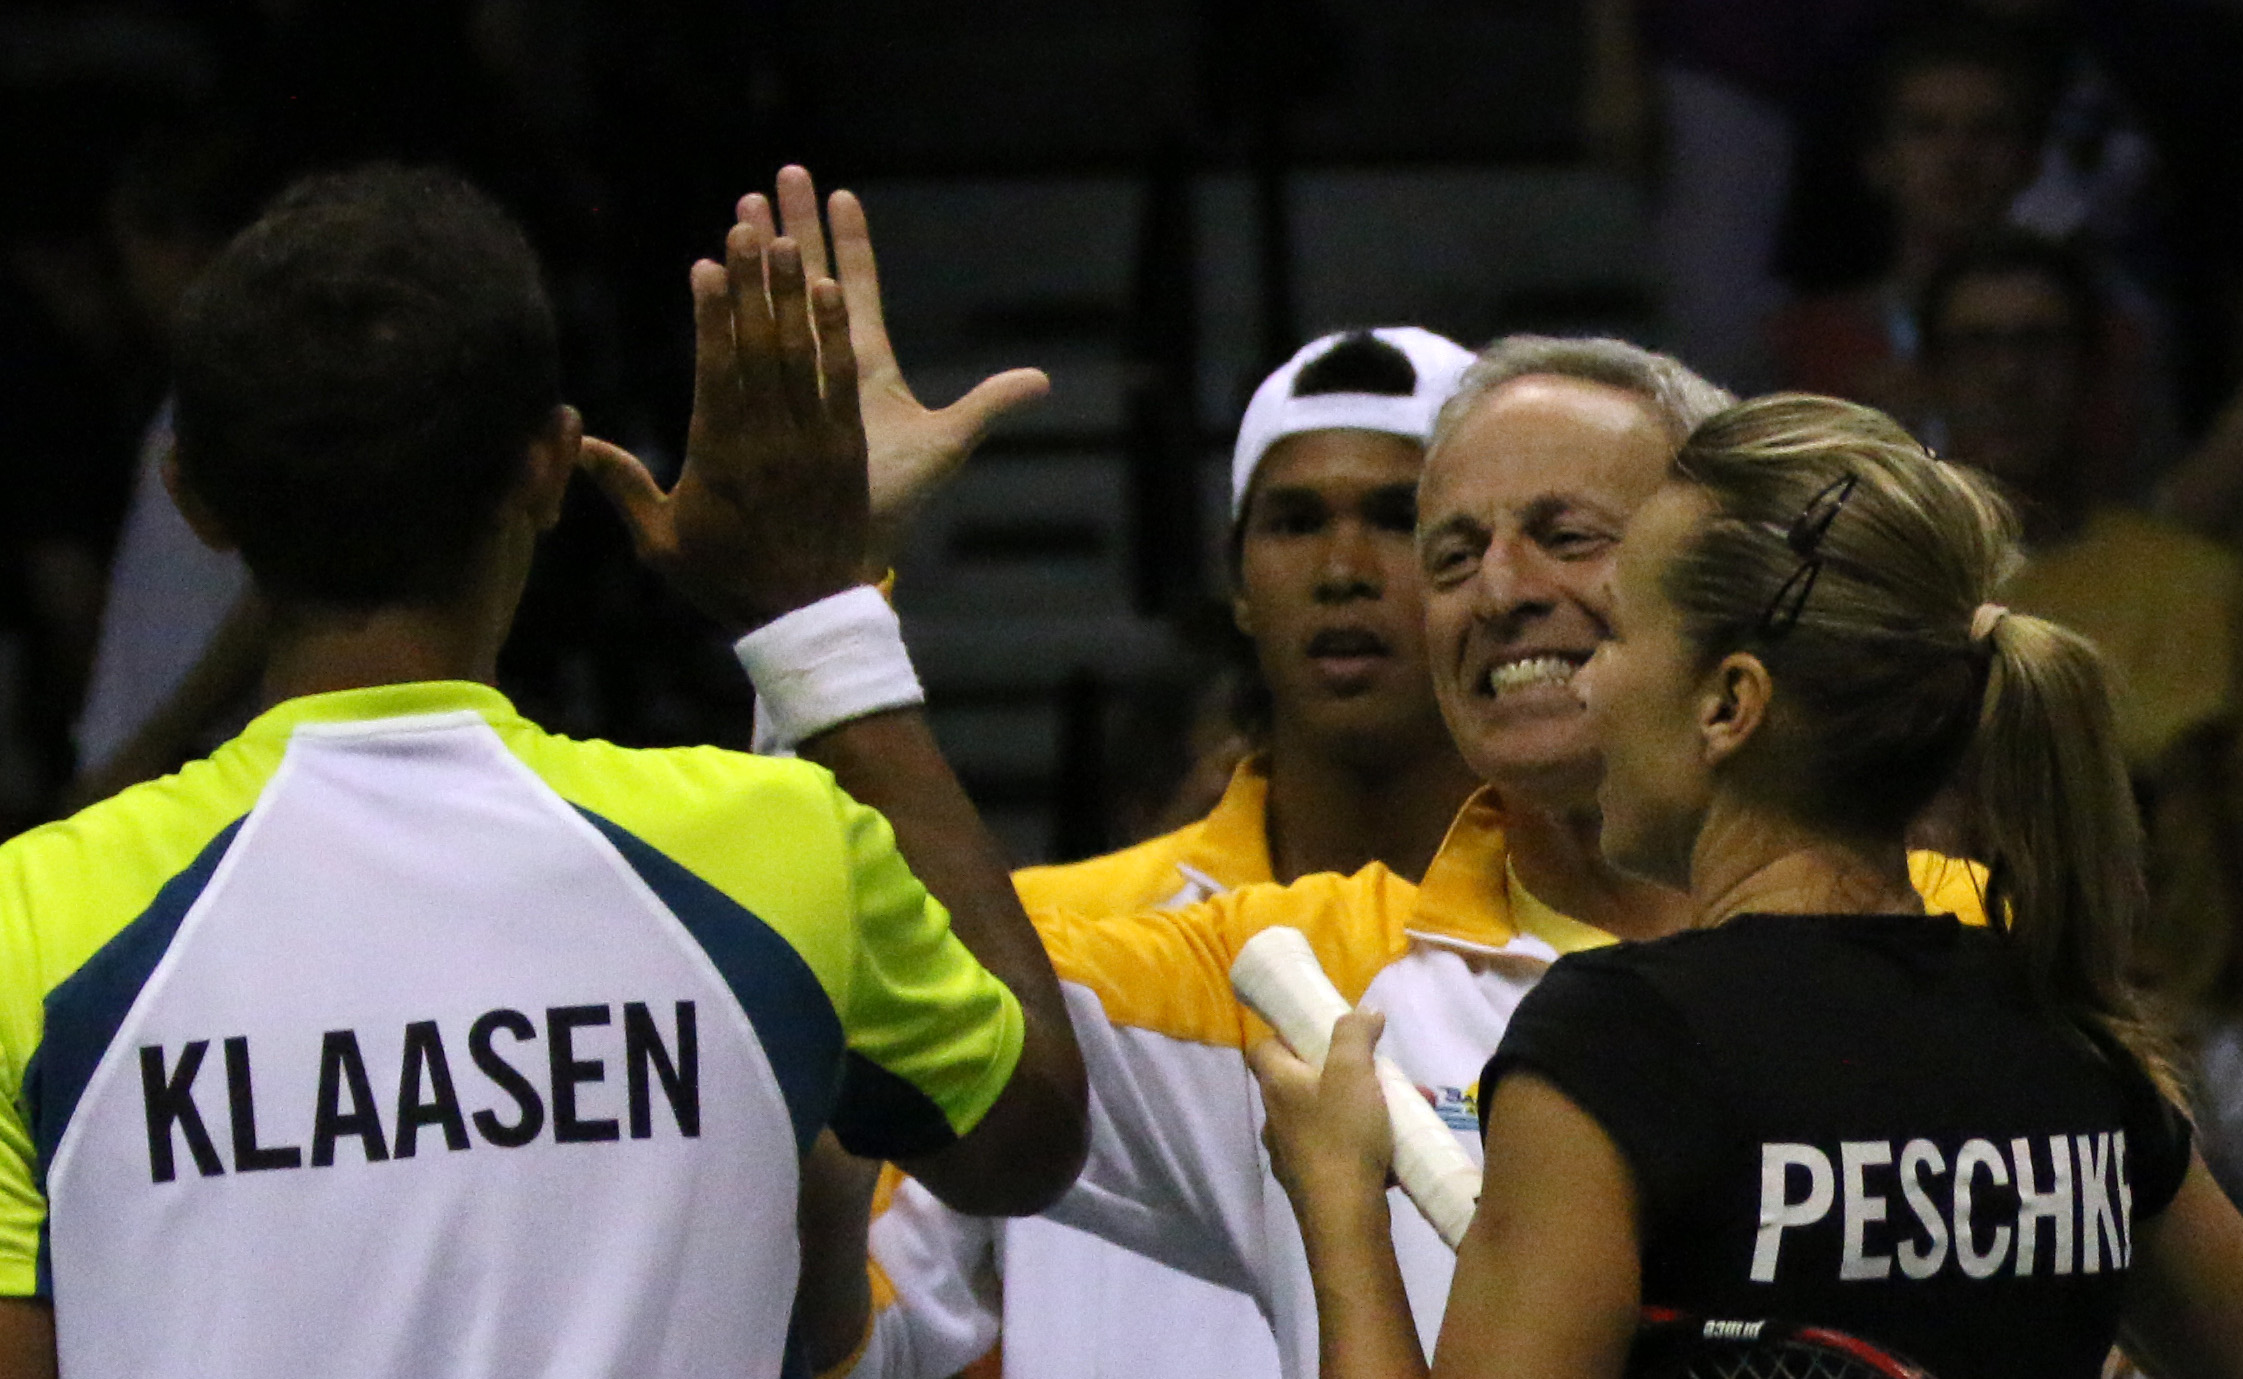 Russell Geyser high fives Raven Klaasen after Klassen and Kveta Peschke won the doubles match against the Austin Aces